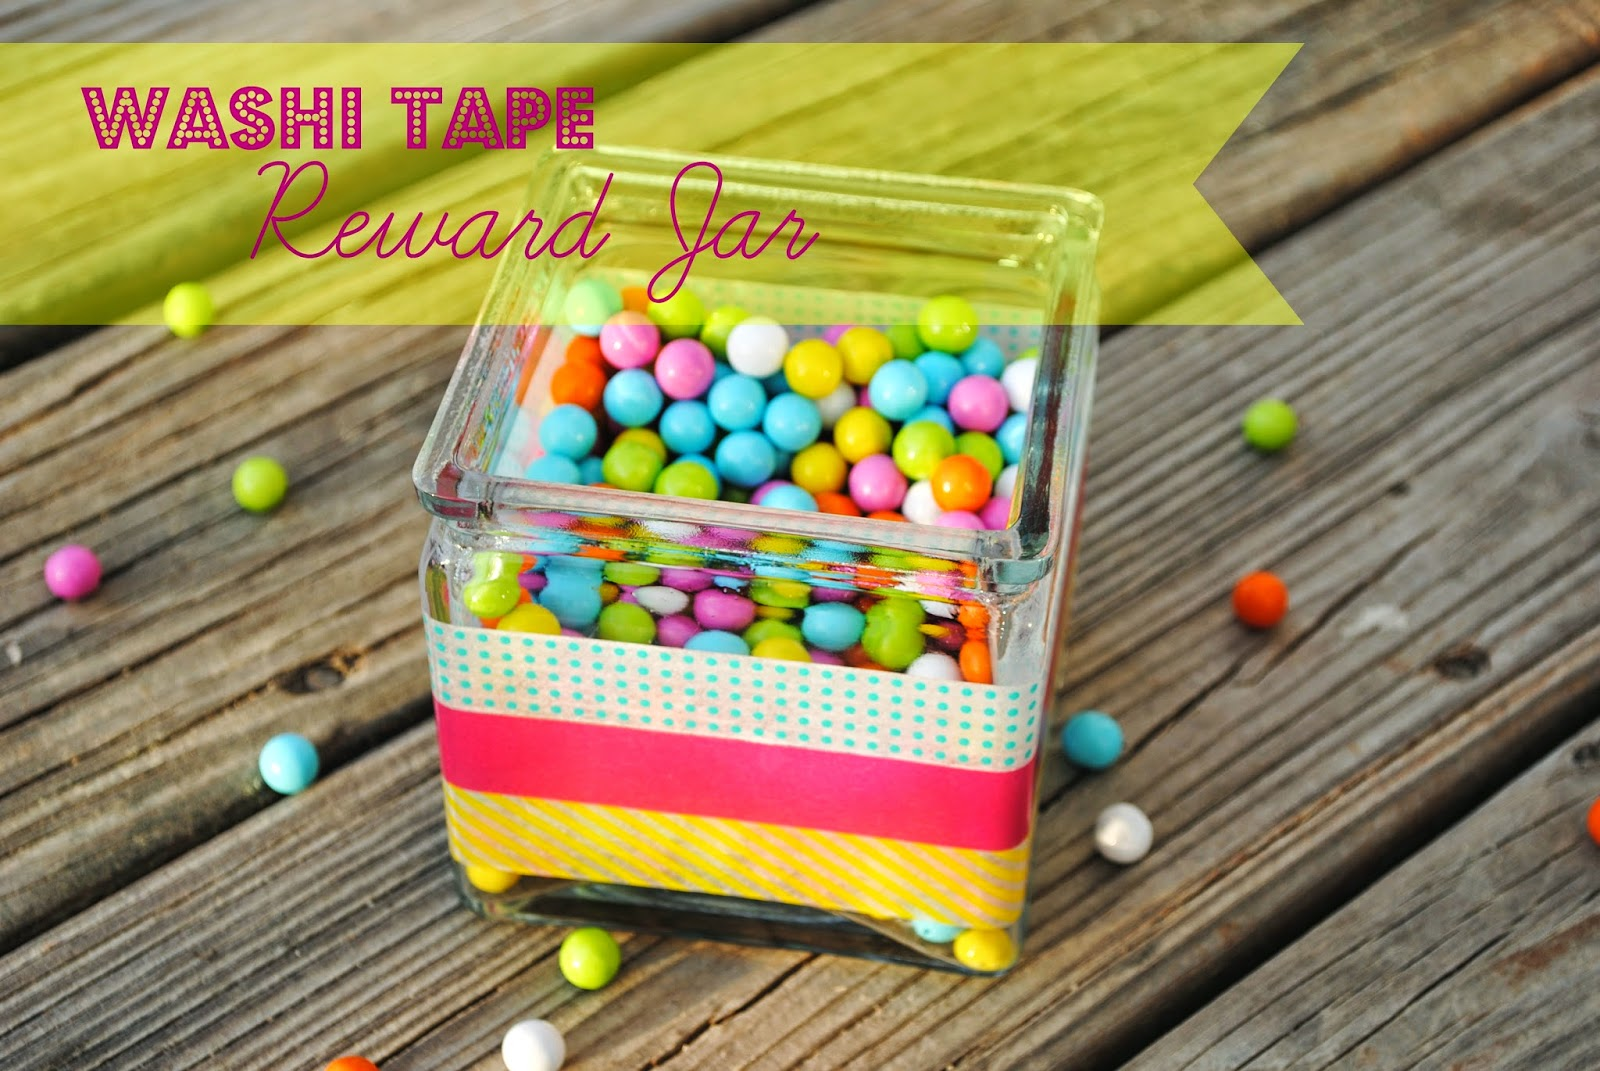 Washi Tape Reward Jar